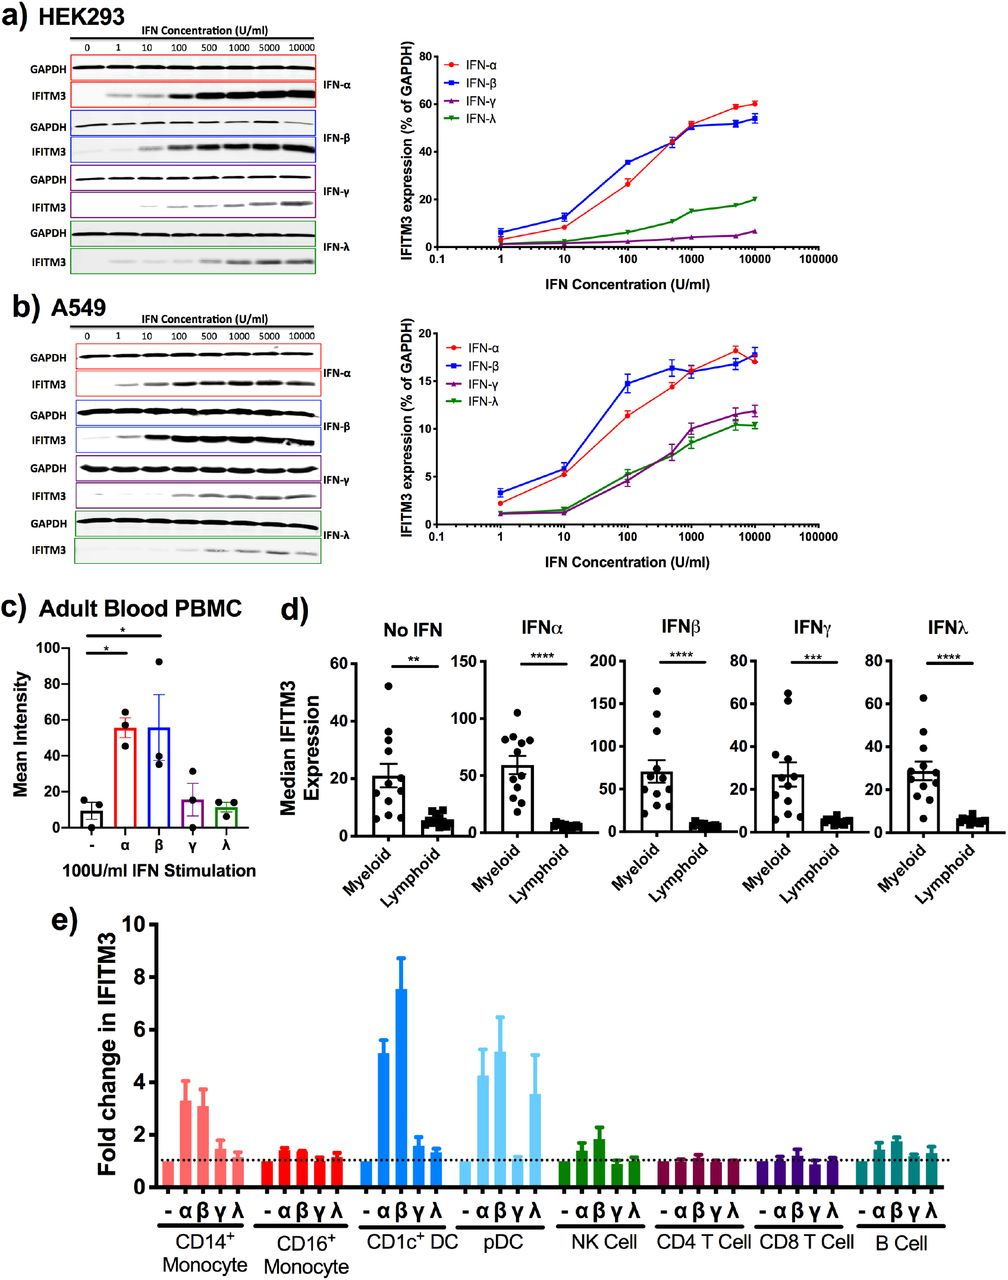 IFITM3 is preferentially induced by Type I IFN (a) Expression of IFITM3 in HEK293 cells following 24 hours IFN stimulation measured by Western blot and expressed as a percentage of GAPDH expression. (b) Expression of IFITM3 in A549 cells following 24 hours IFN stimulation measured by Western blot and expressed as a percentage of GAPDH expression. (c) Adult blood PBMC were cultured for 48 hours with IFN stimulation prior to measurement of IFITM3 expression by mass cytometry. (d) Expression of IFITM3 in myeloid and lymphoid cells following IFN stimulation. (e) IFITM3 expression is expressed as a fold change in expression compared to the basal level of expression in order to show induction. Data is expressed ±SEM and analysed by one-way ANOVA. *p